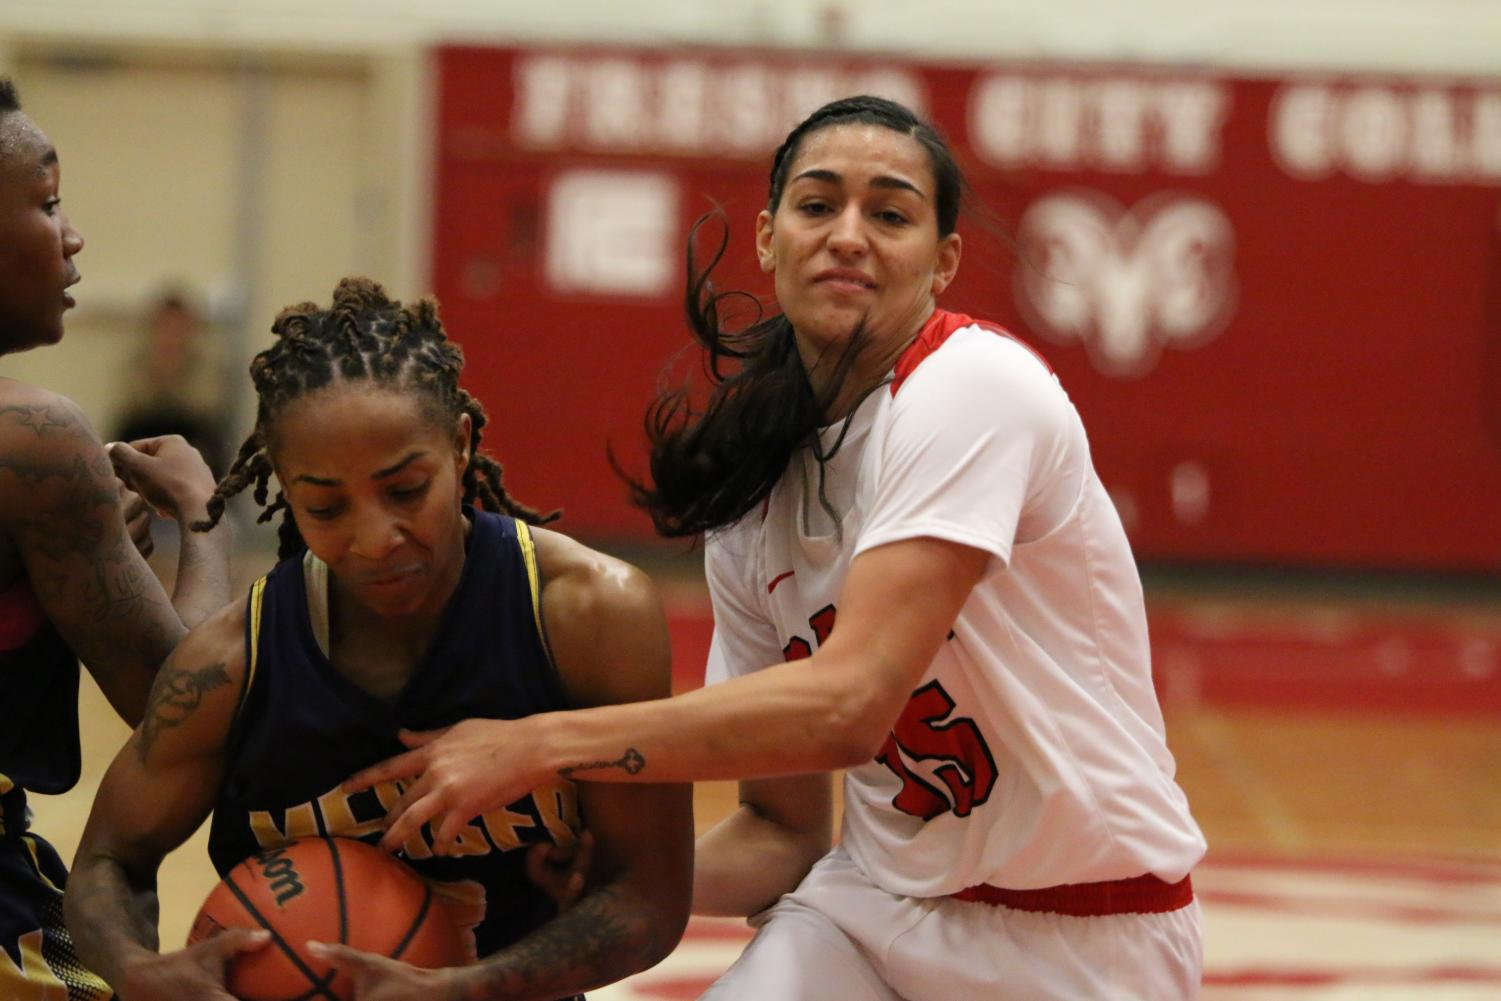 Fresno City College women's basketball guard Jasmine Phoolka gets the ball stolen from her by a Merced College player during the Fresno City Tournament championship game on Sunday, Dec. 10, 2017.